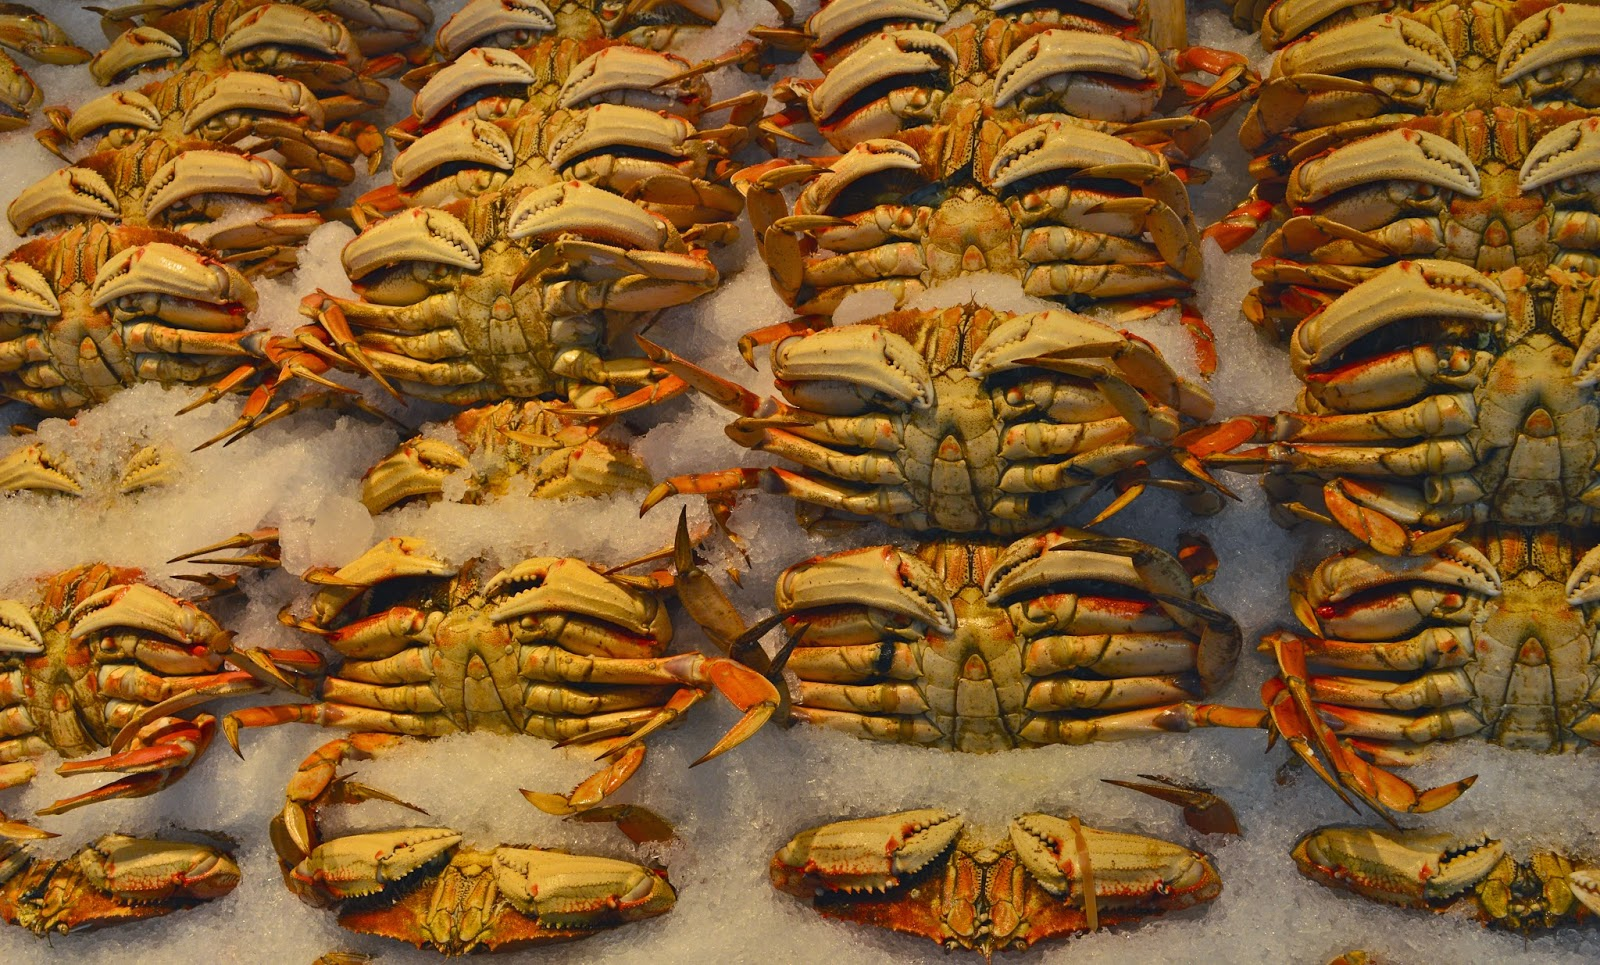 Fresh crabs from Pike Place Fish Market